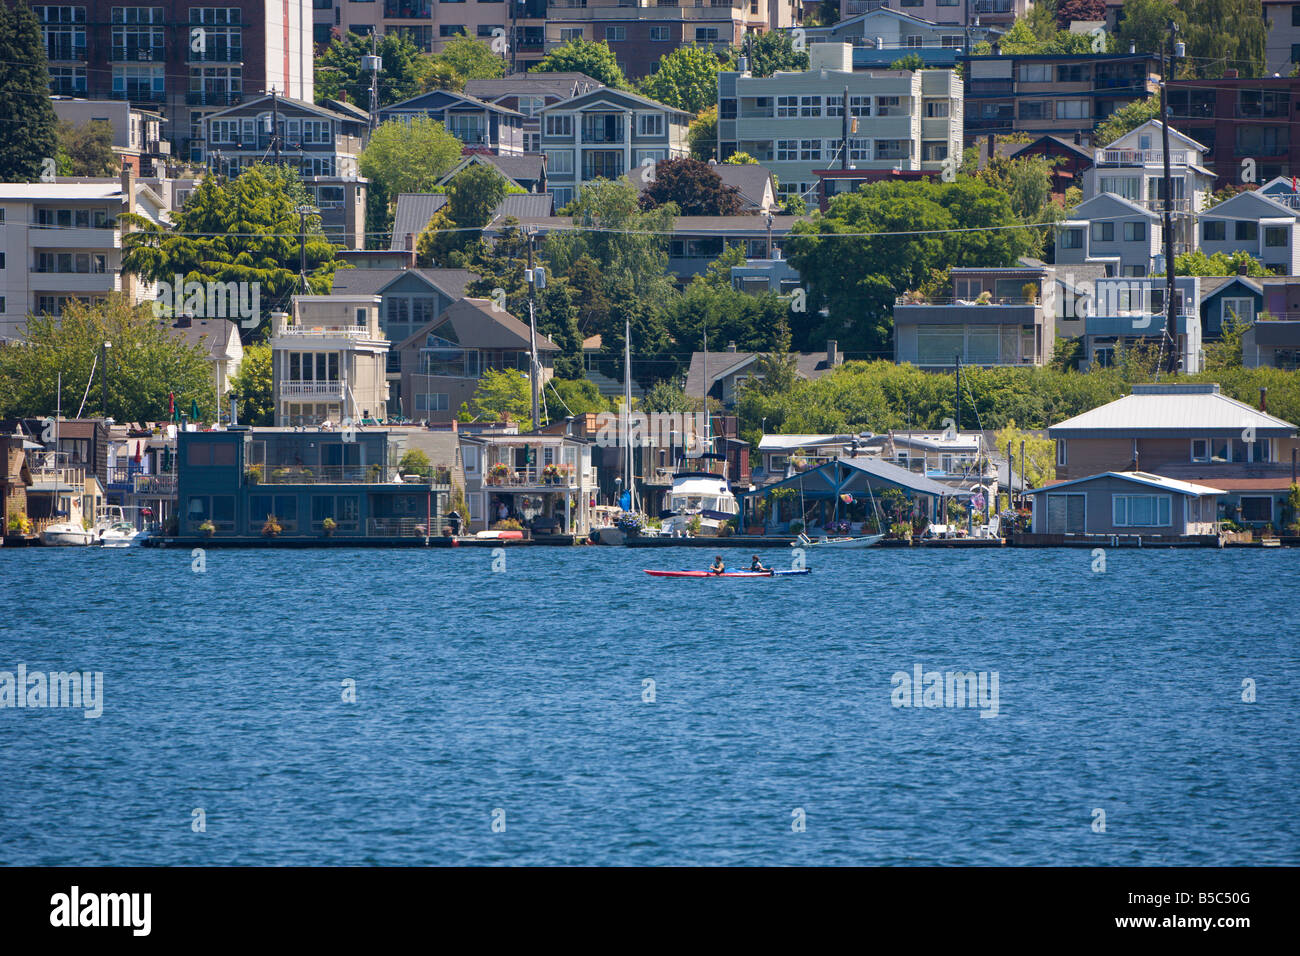 Two kayakers paddle past floating homes in the Eastlake neighborhood on Lake Union in Seattle, Washington - Stock Image